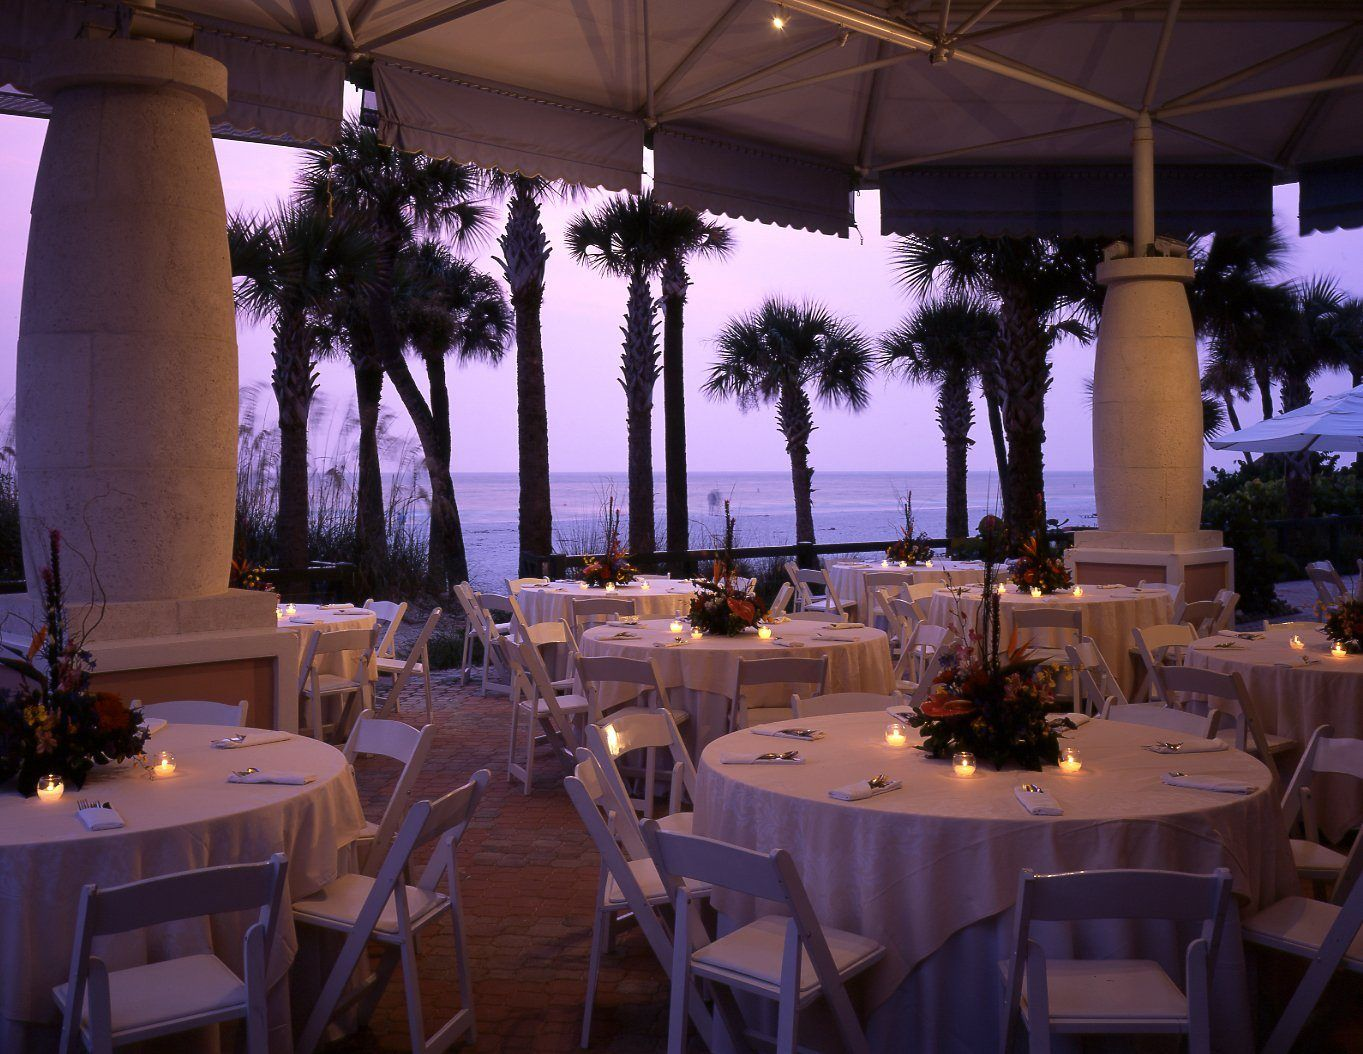 Beach Pavilion Loews Don Cesar Hotel Offers A Photo